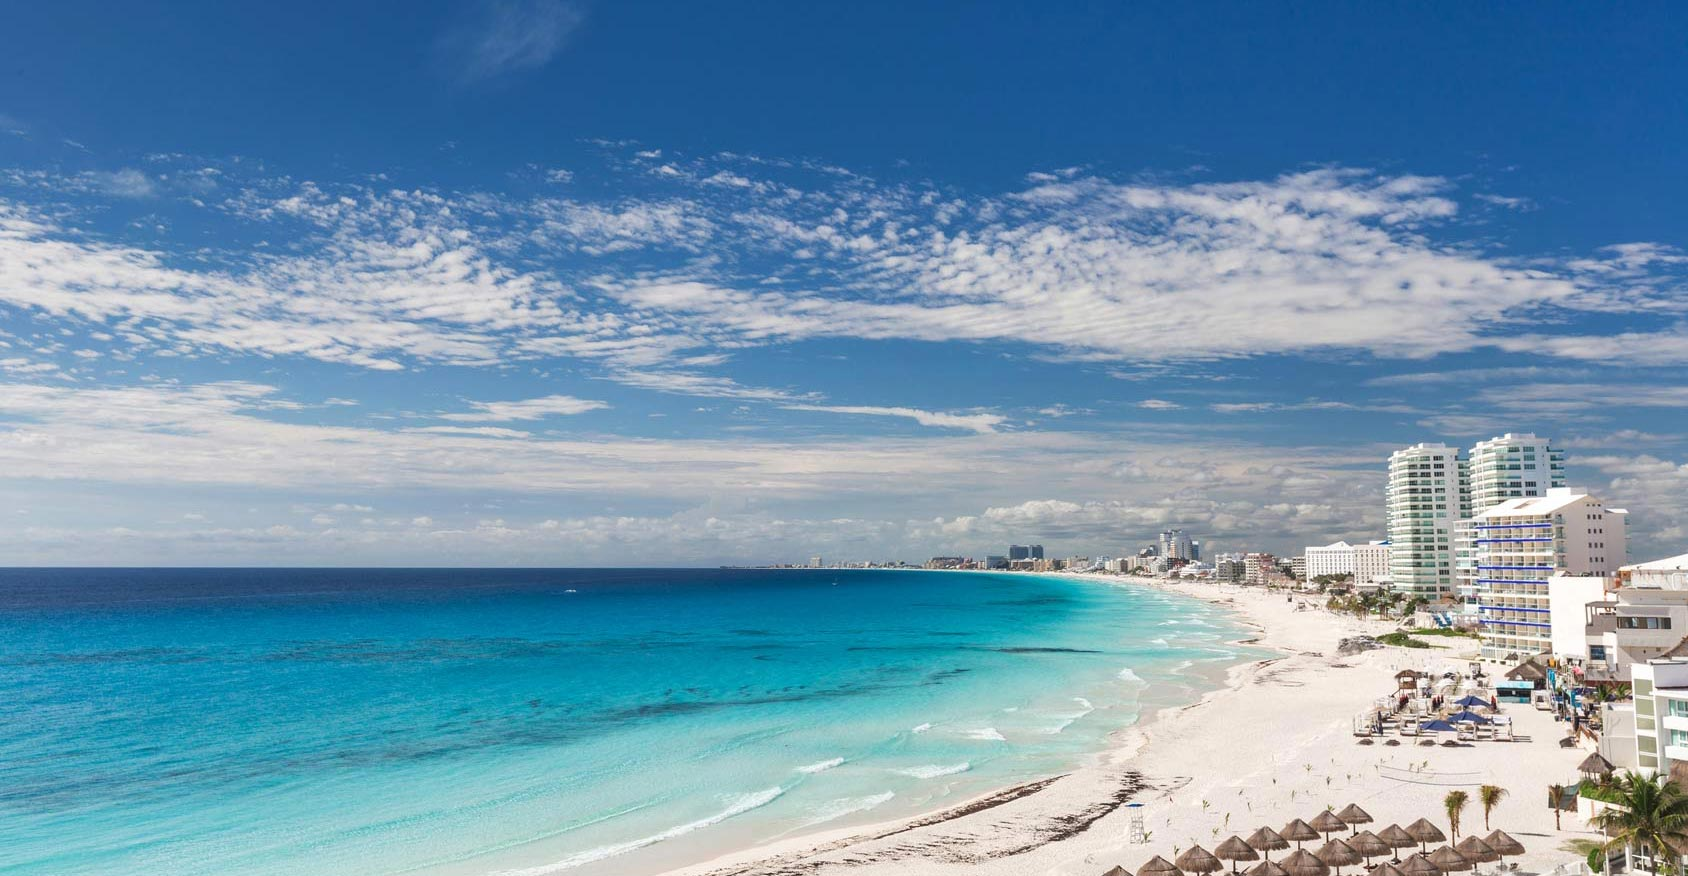 Cancun Beach with Hotels